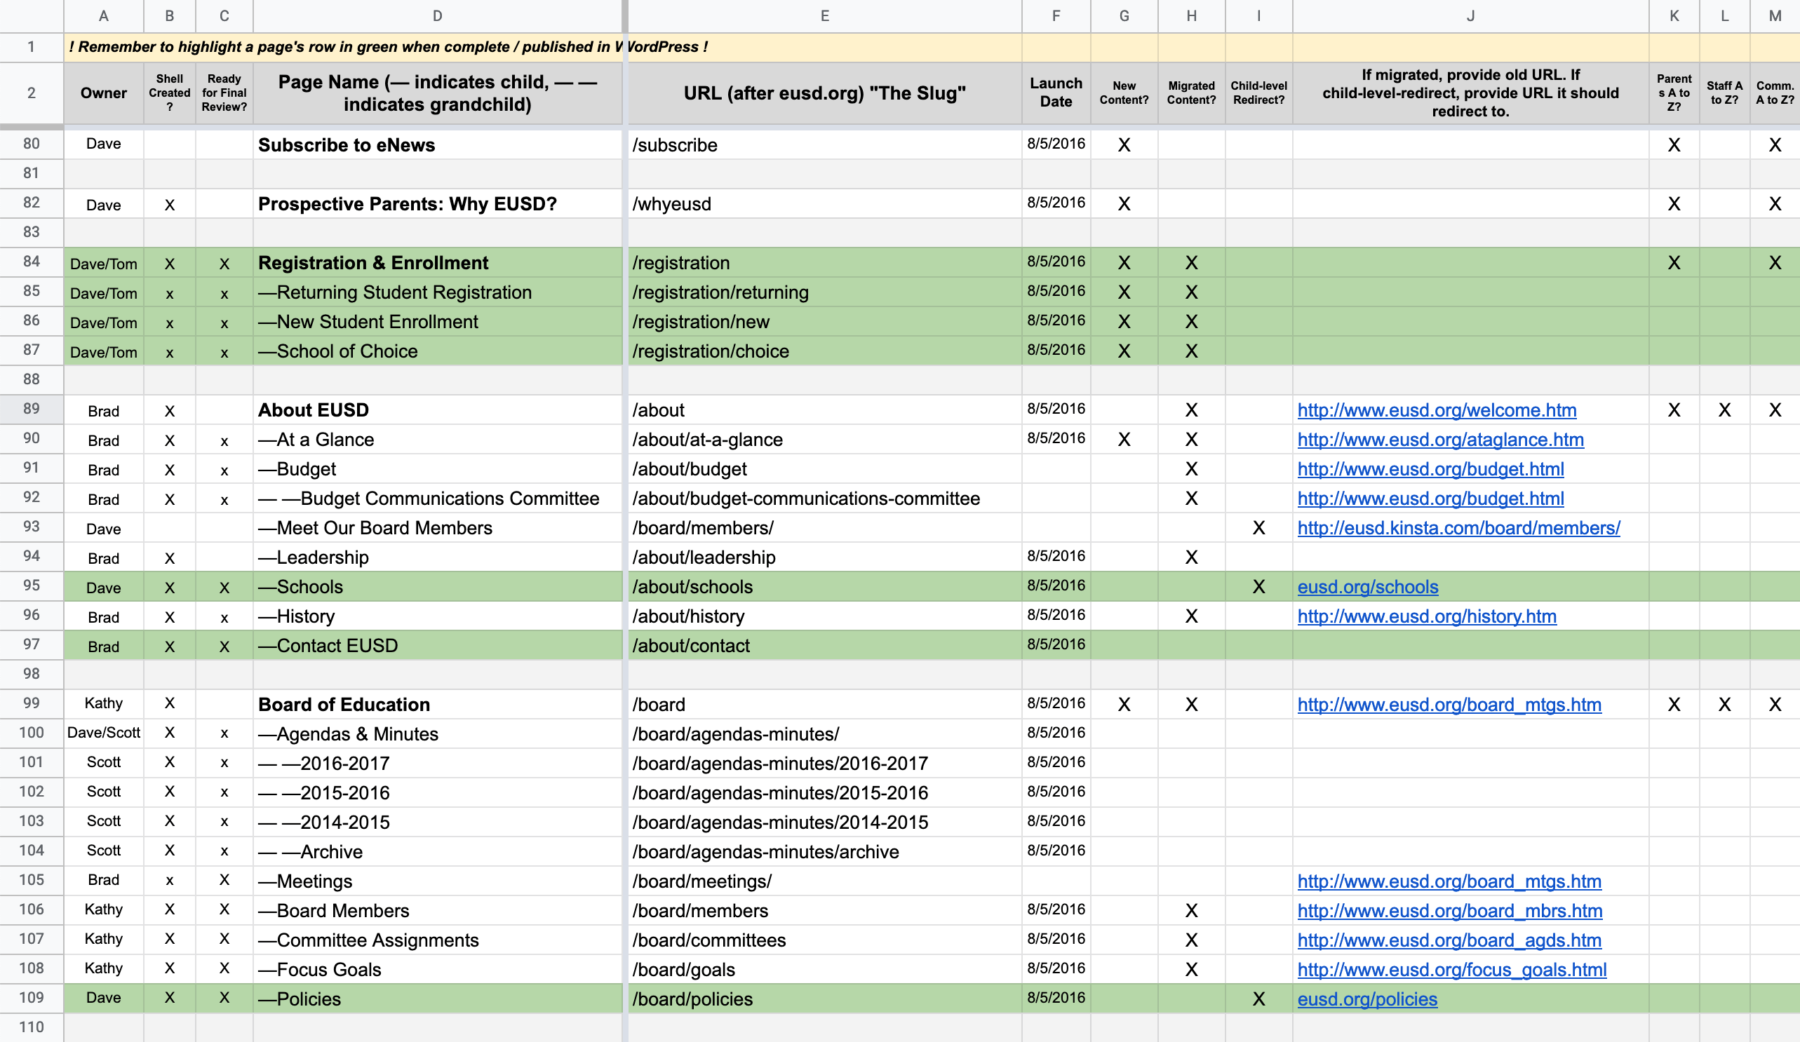 My spreadsheet with multiple rows & columns of project status info, described further in the next paragraph.